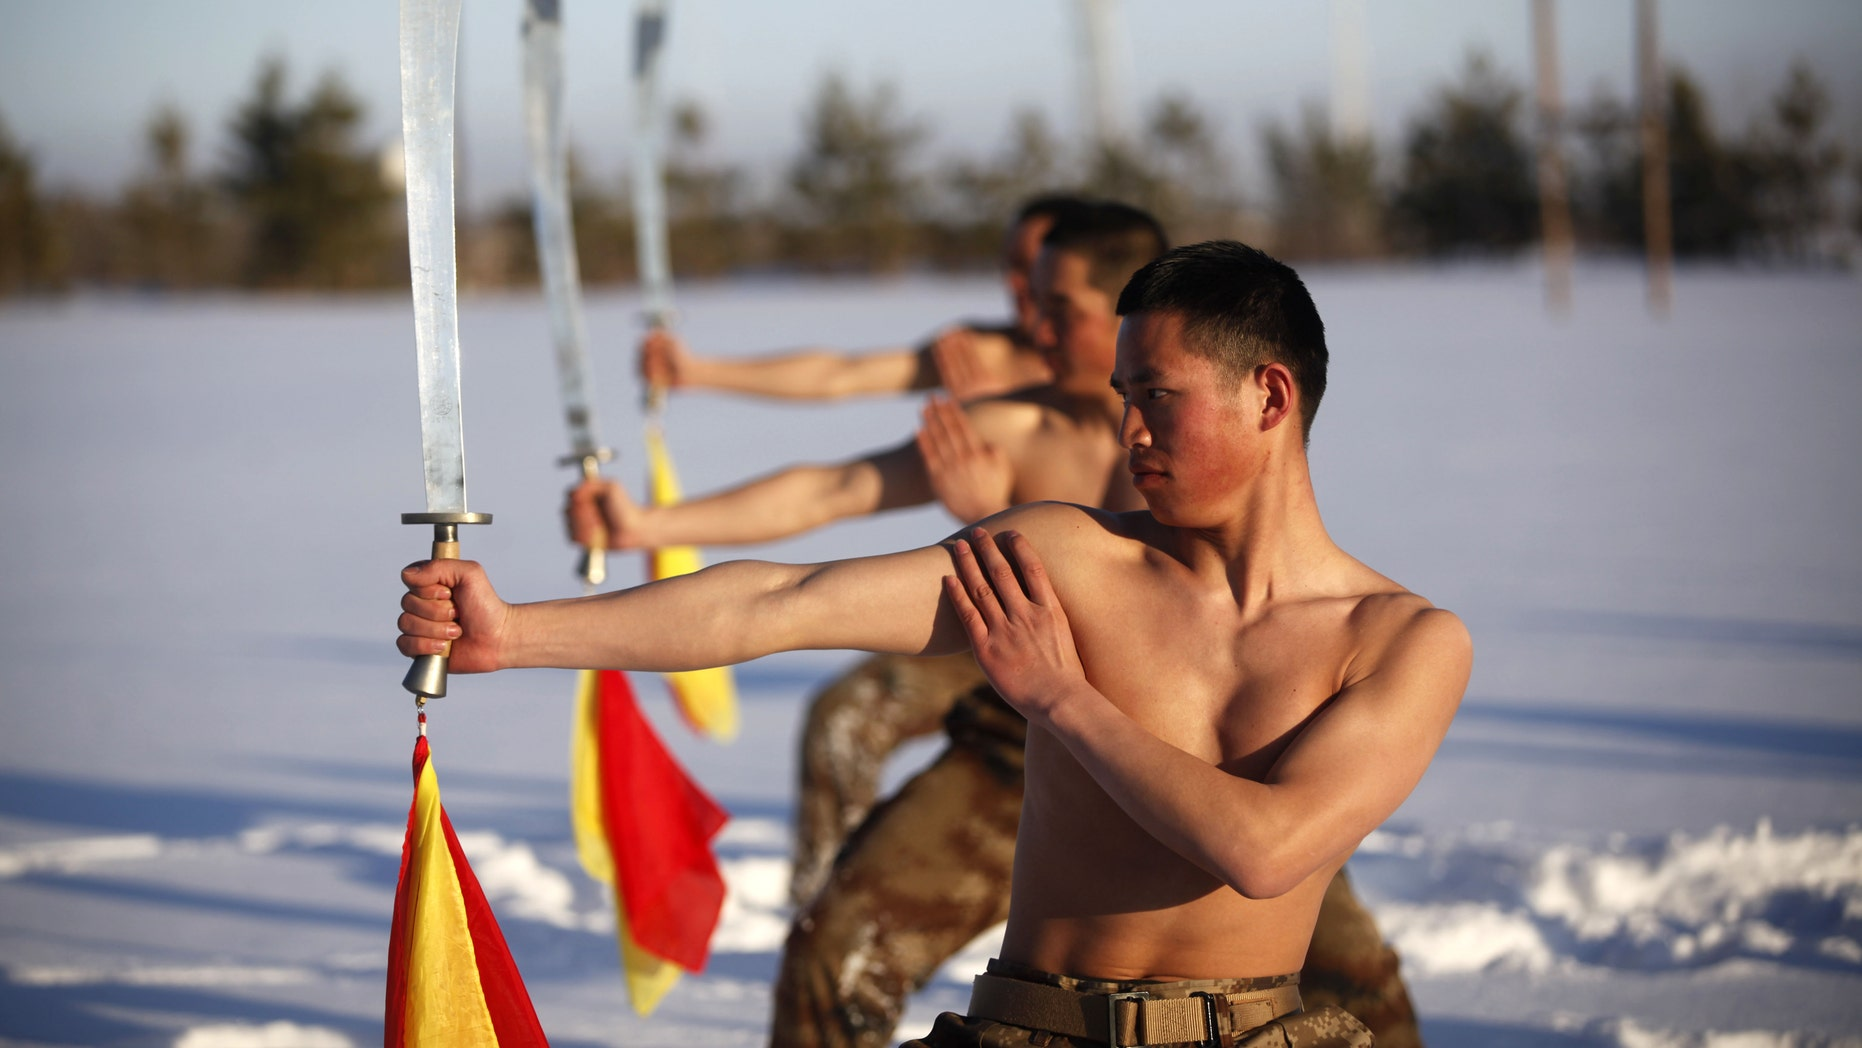 File photo: Soldiers of China's People's Liberation Army (PLA) practice with swords as they take part in a winter training at China's border with Russia in Heihe, Heilongjiang province, February 27, 2015.